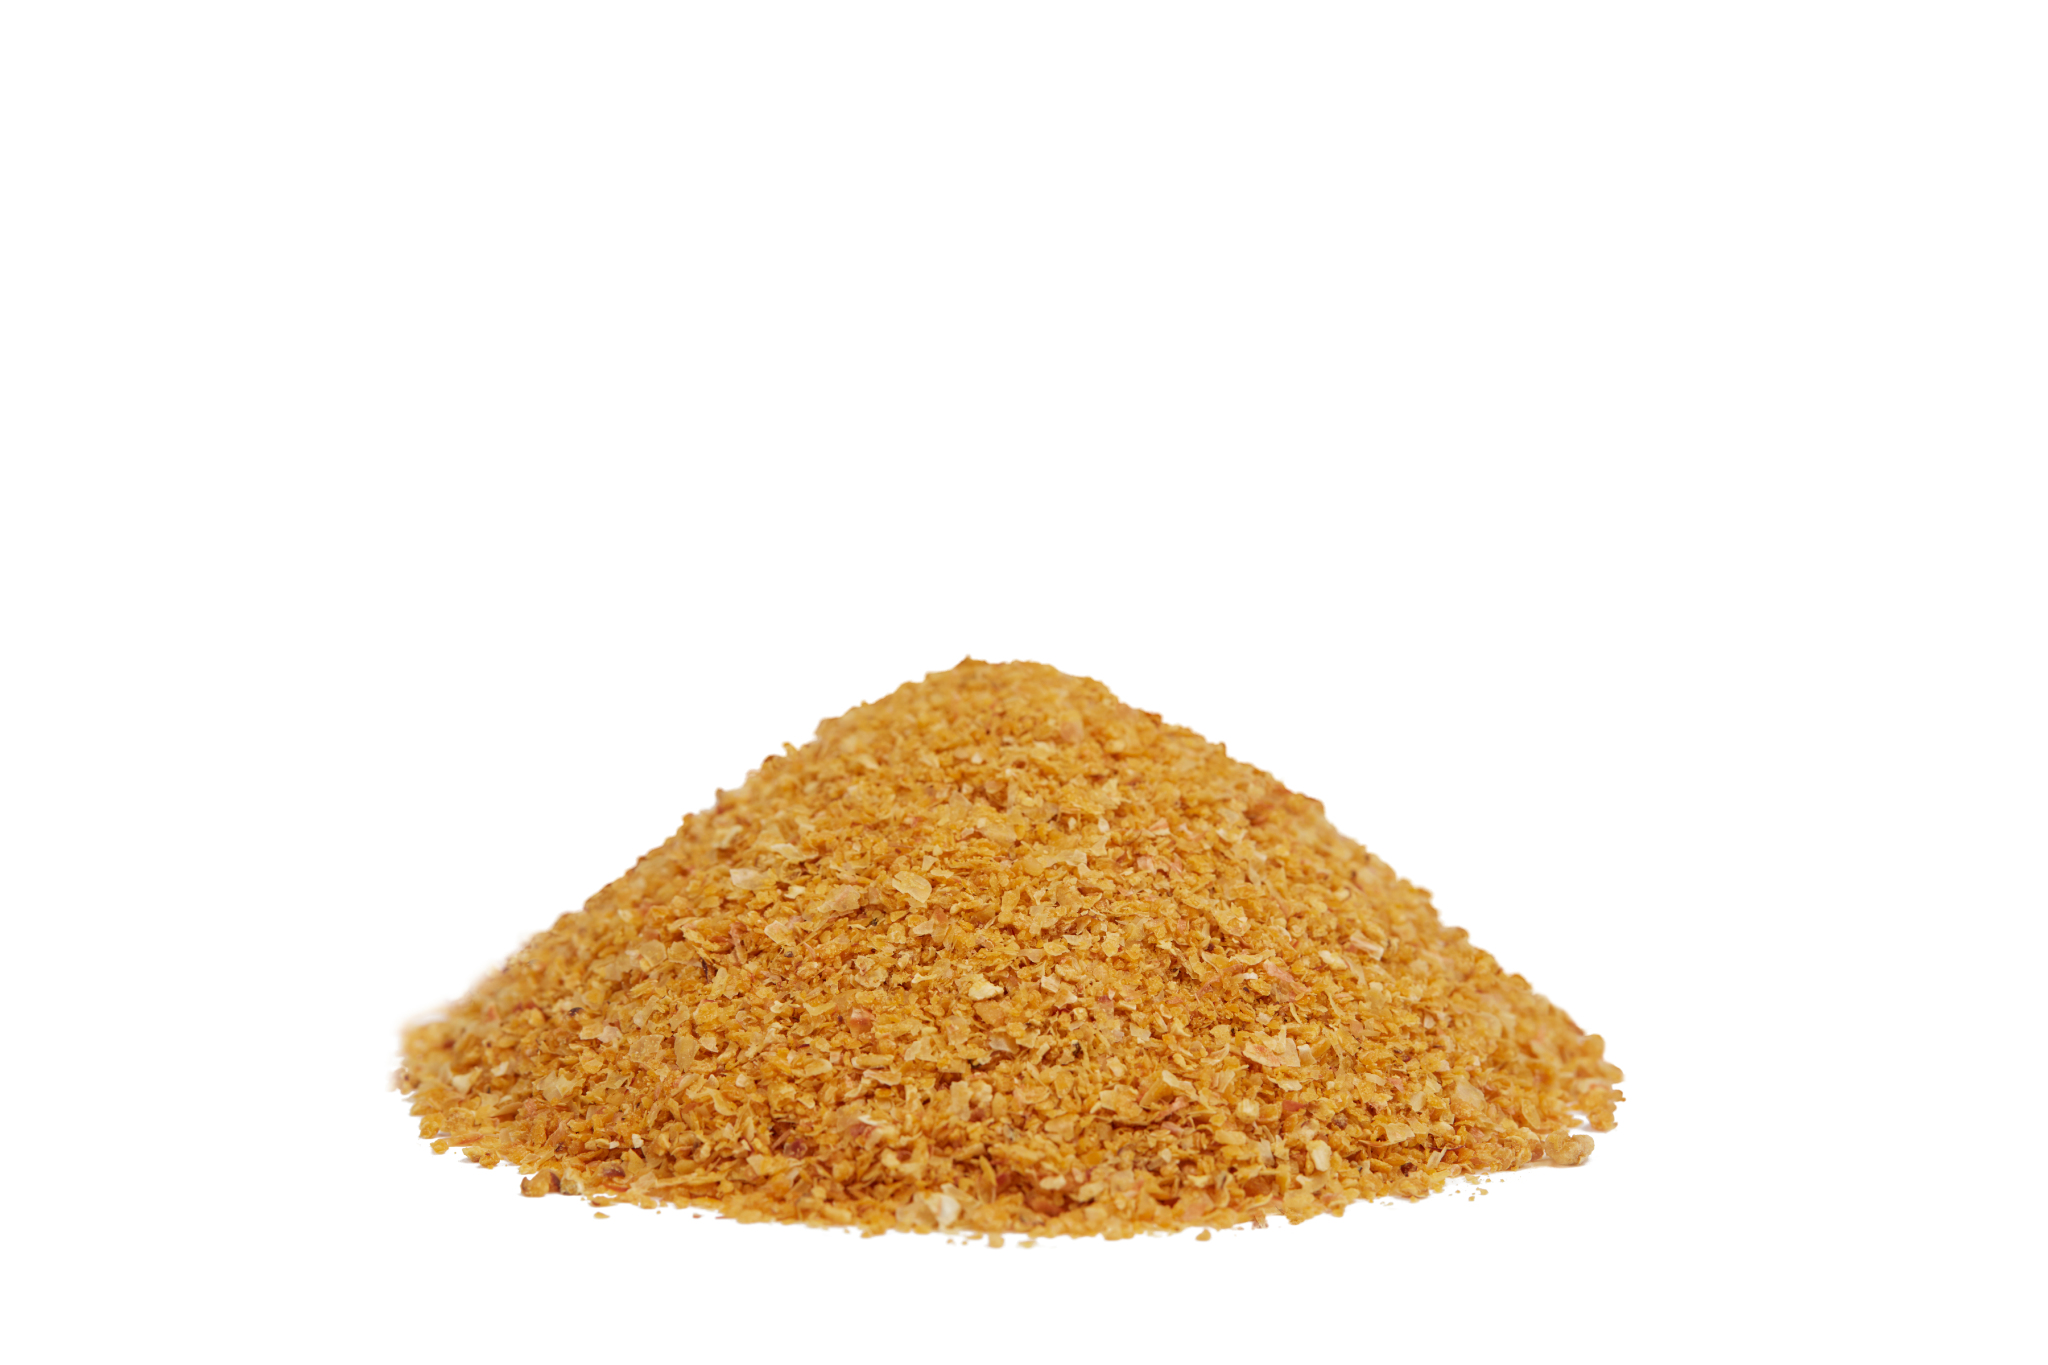 Dried Distillers Grains With Solubles